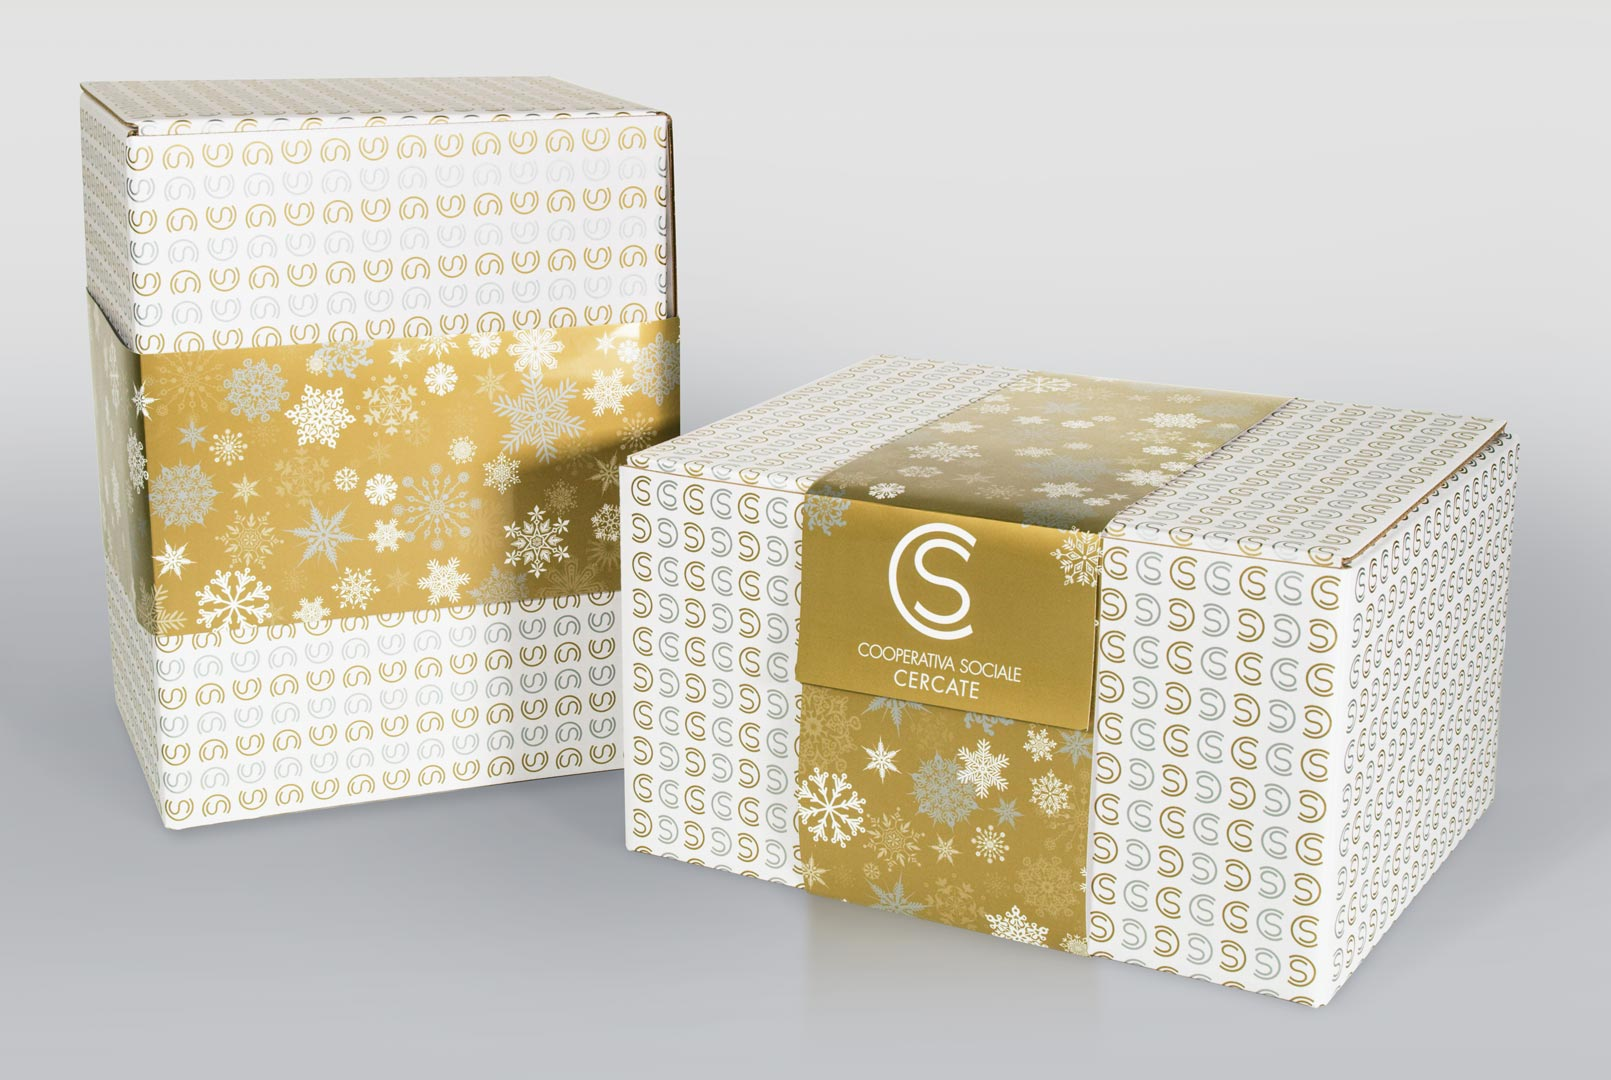 Cercate - Packaging Natale